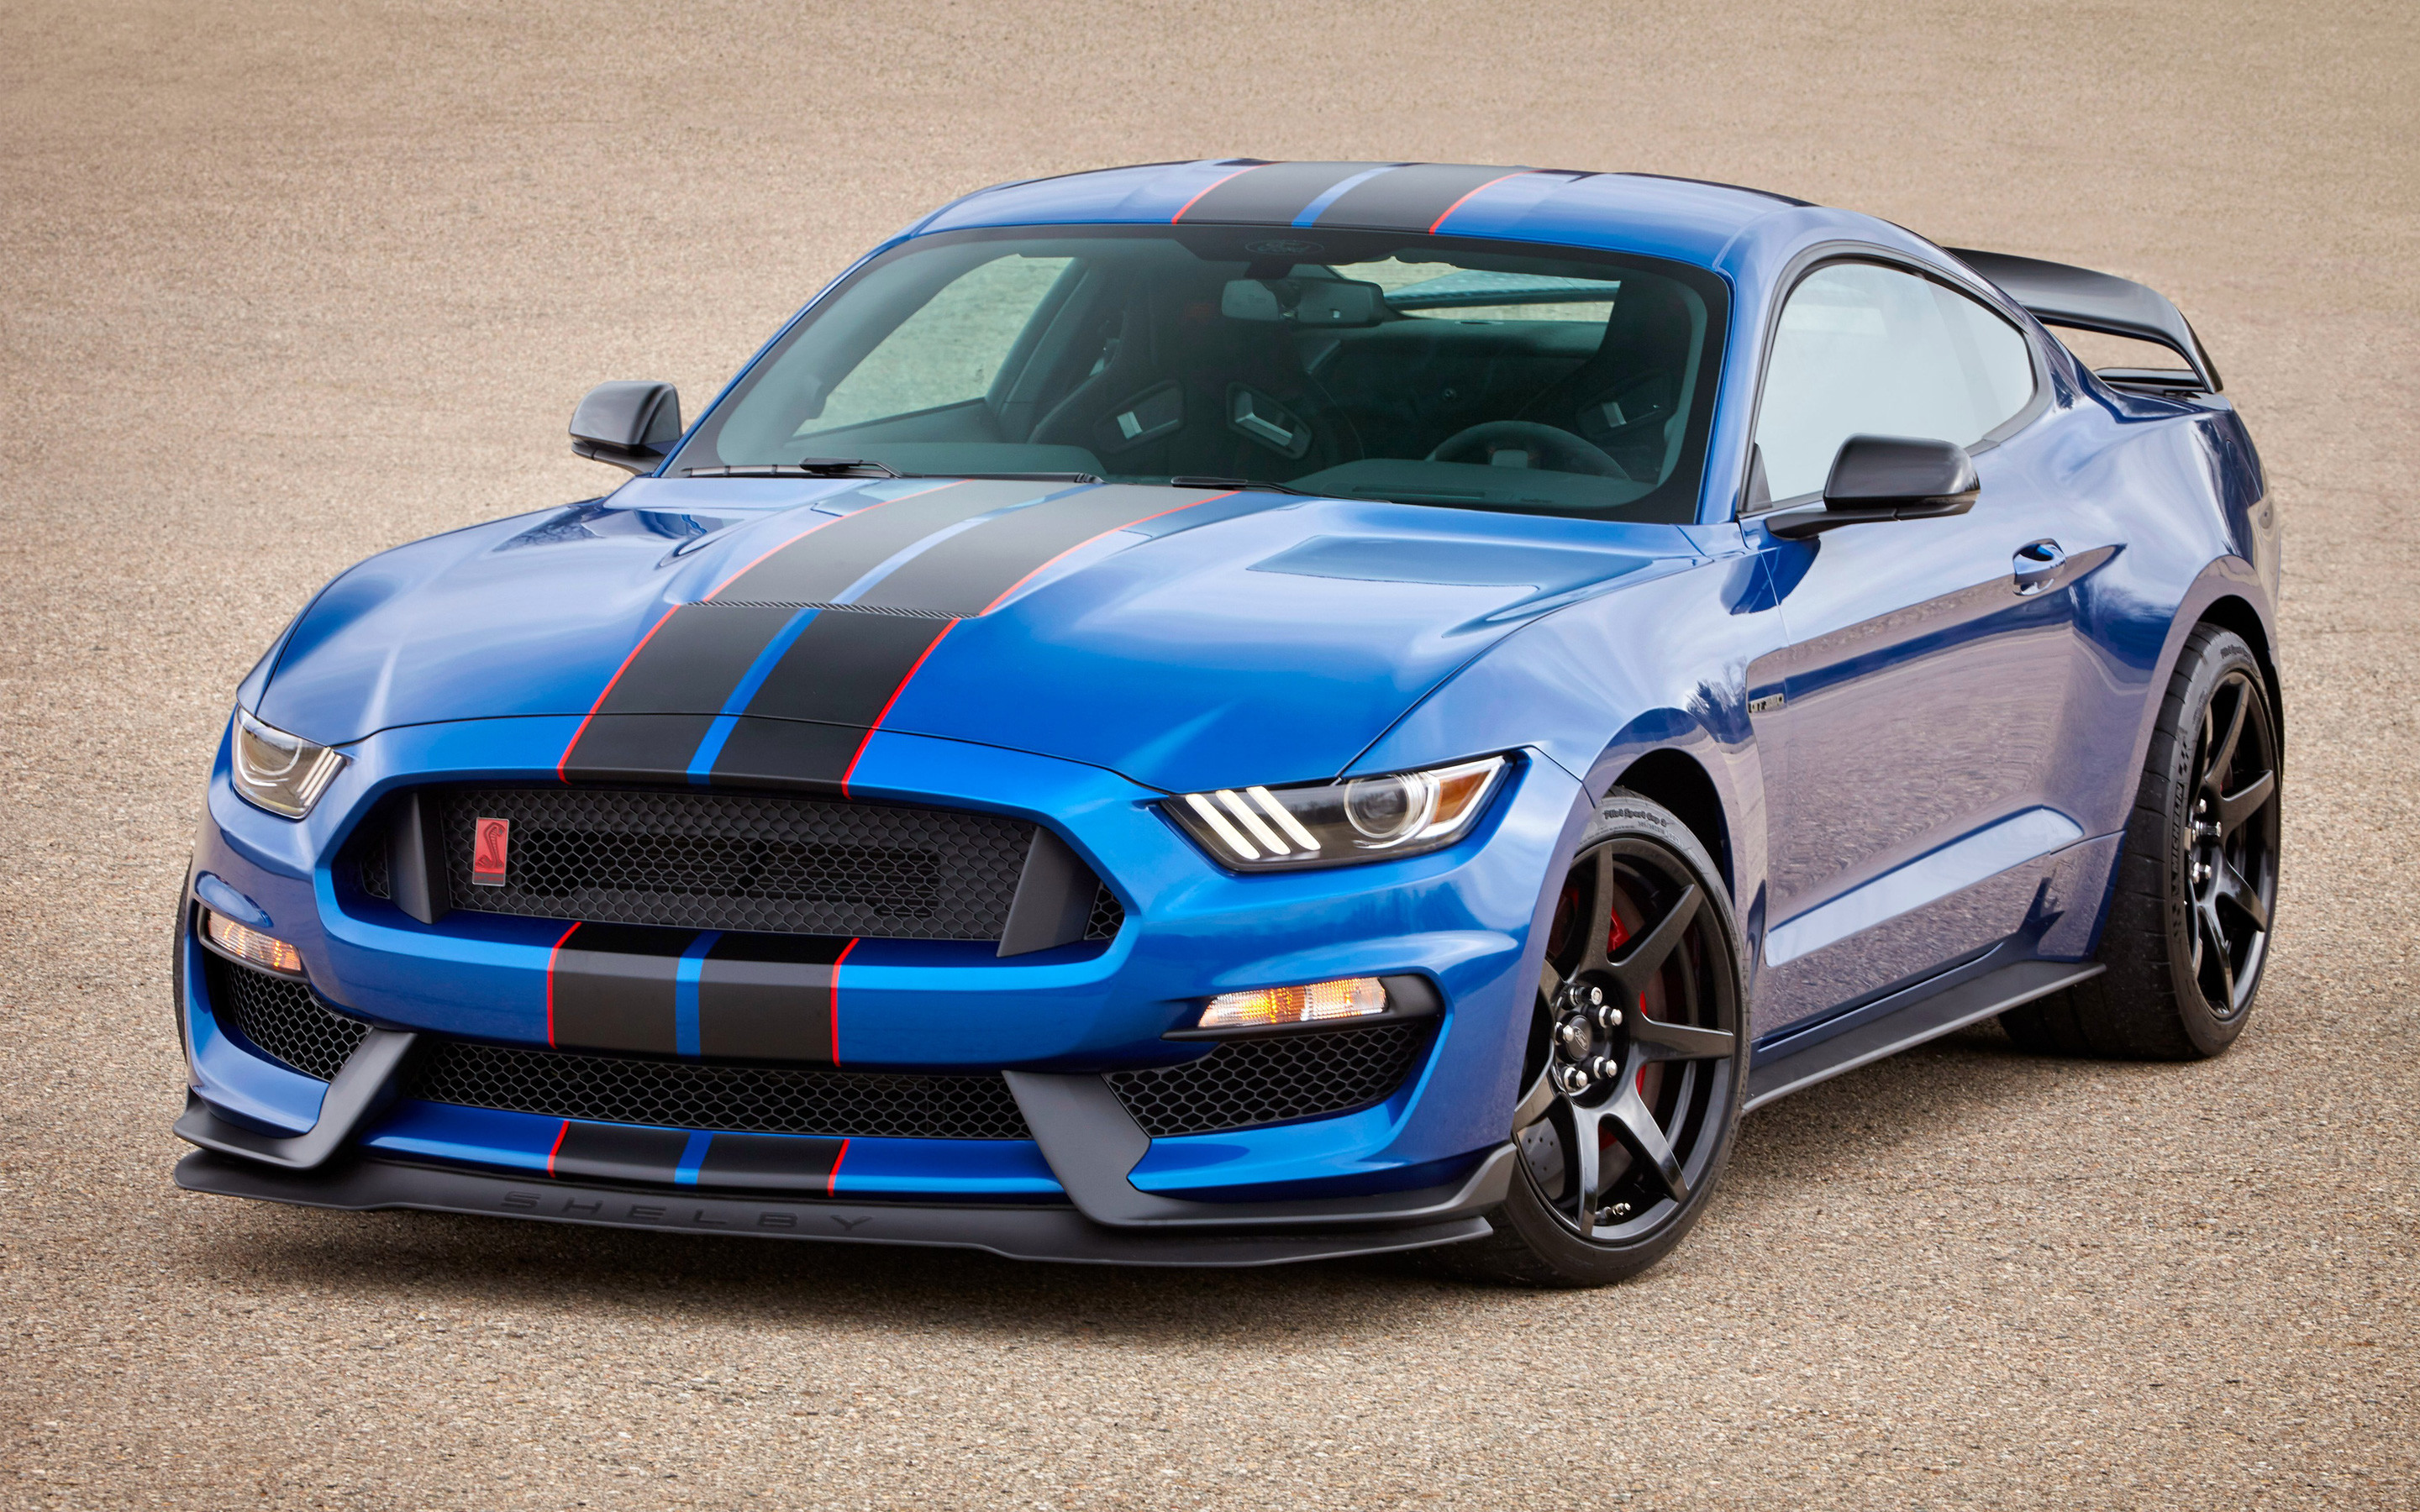 Res: 2880x1800, Mustang Shelby GT350 4K